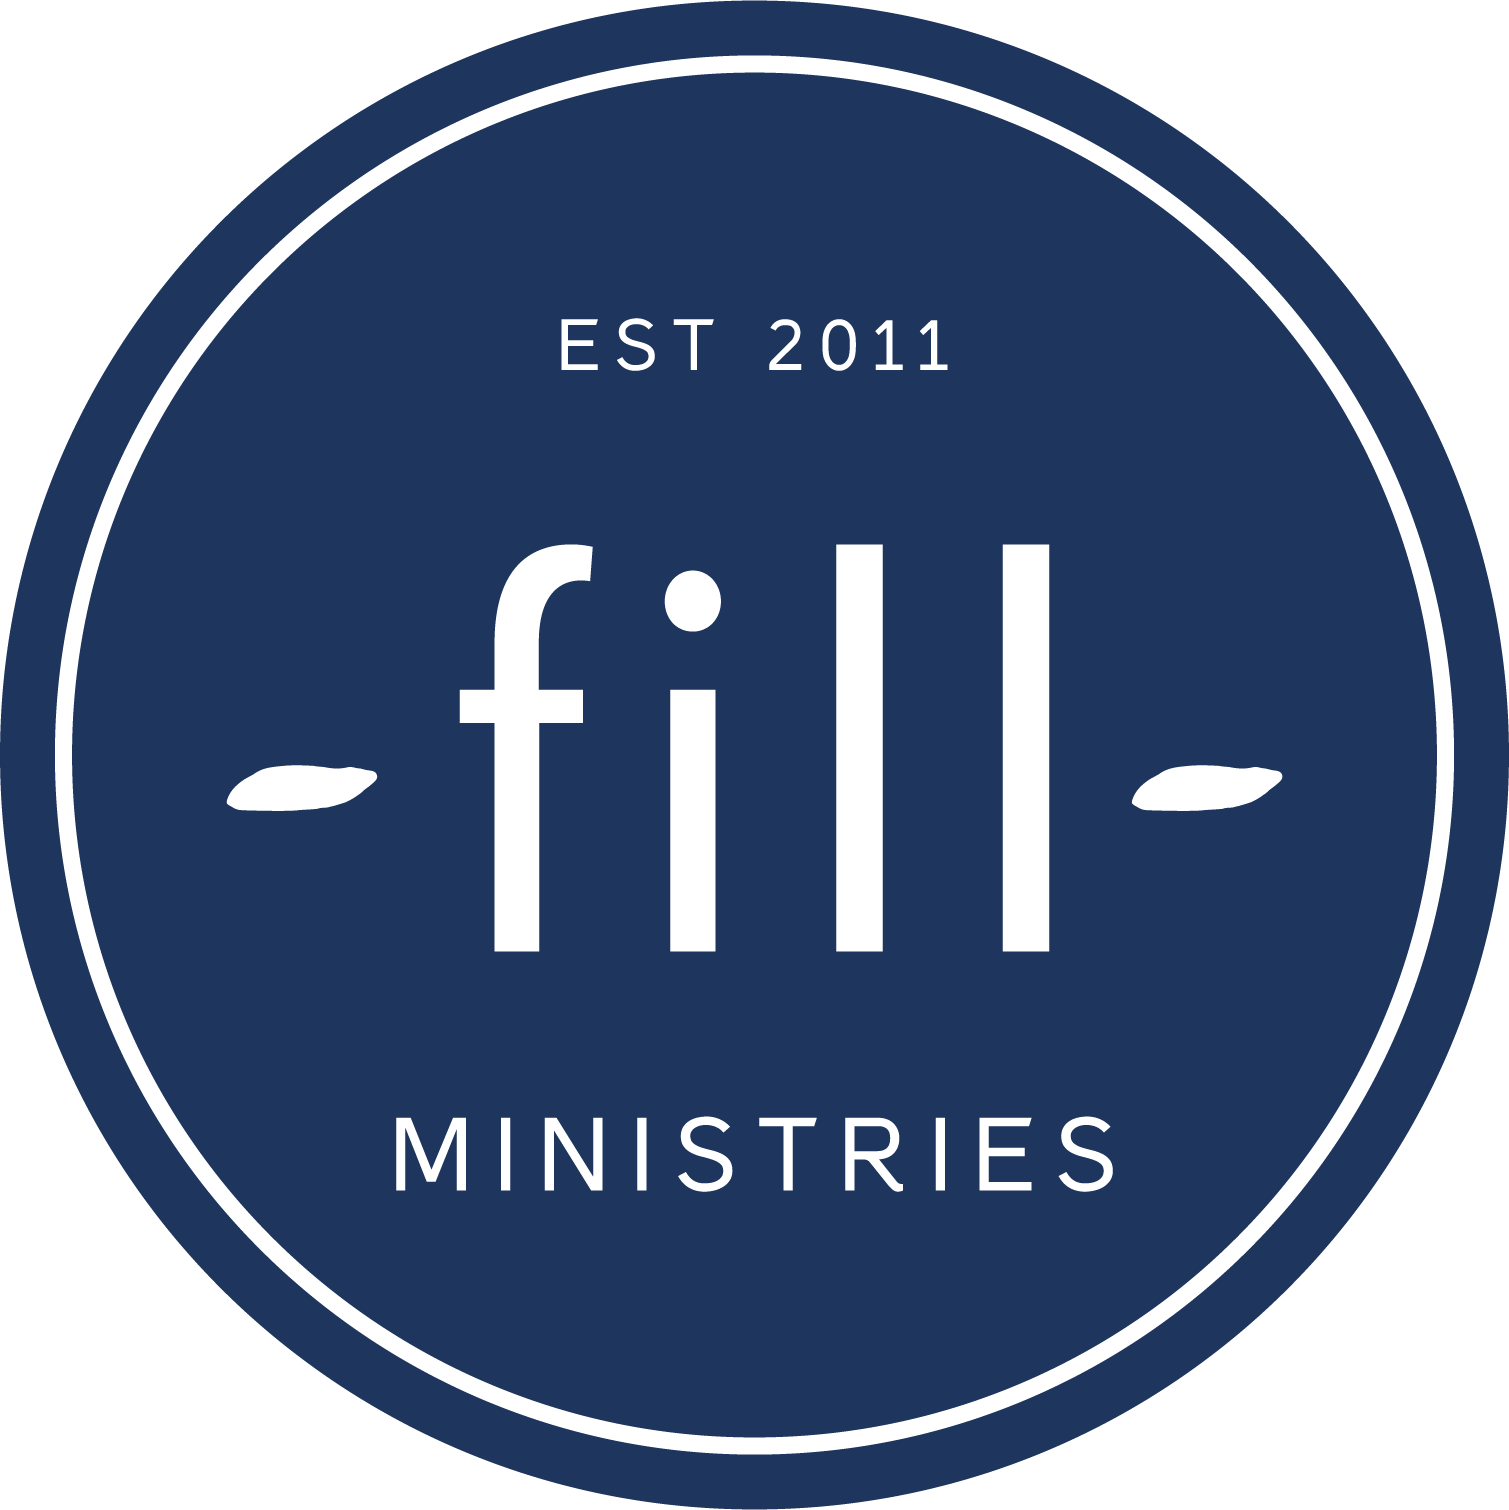 fill logo recolored